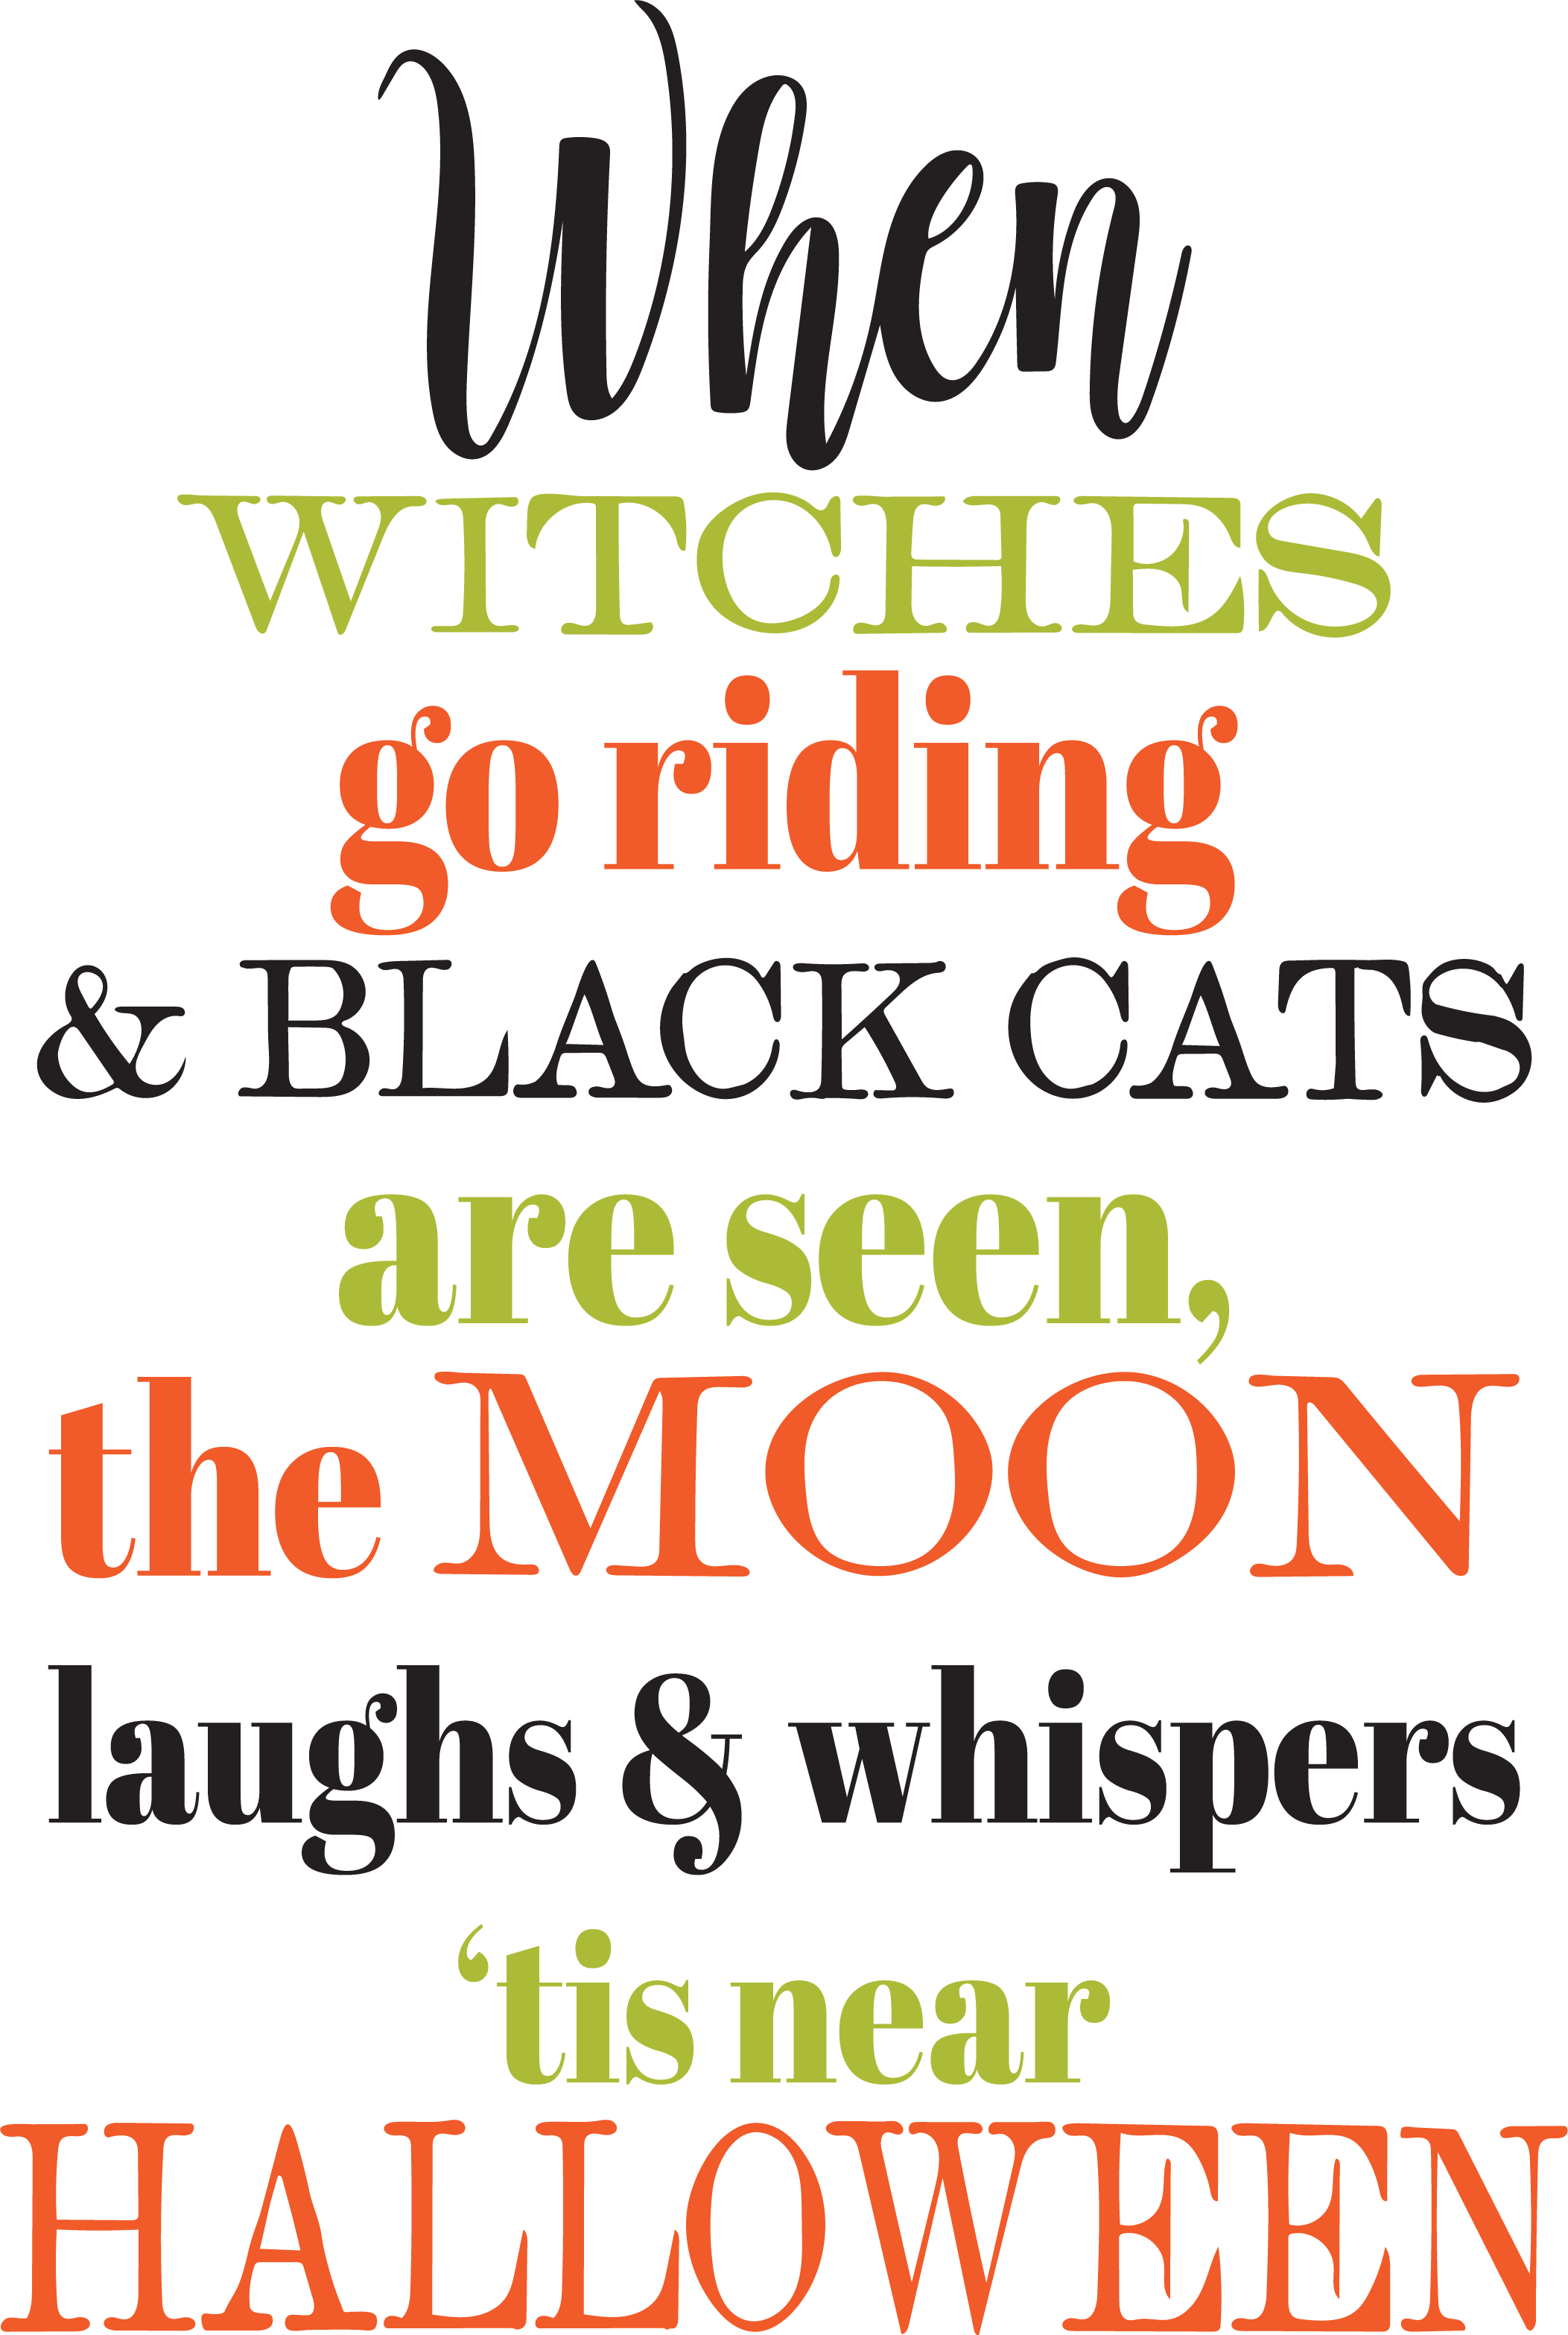 Witches Go Riding SVG Cut File